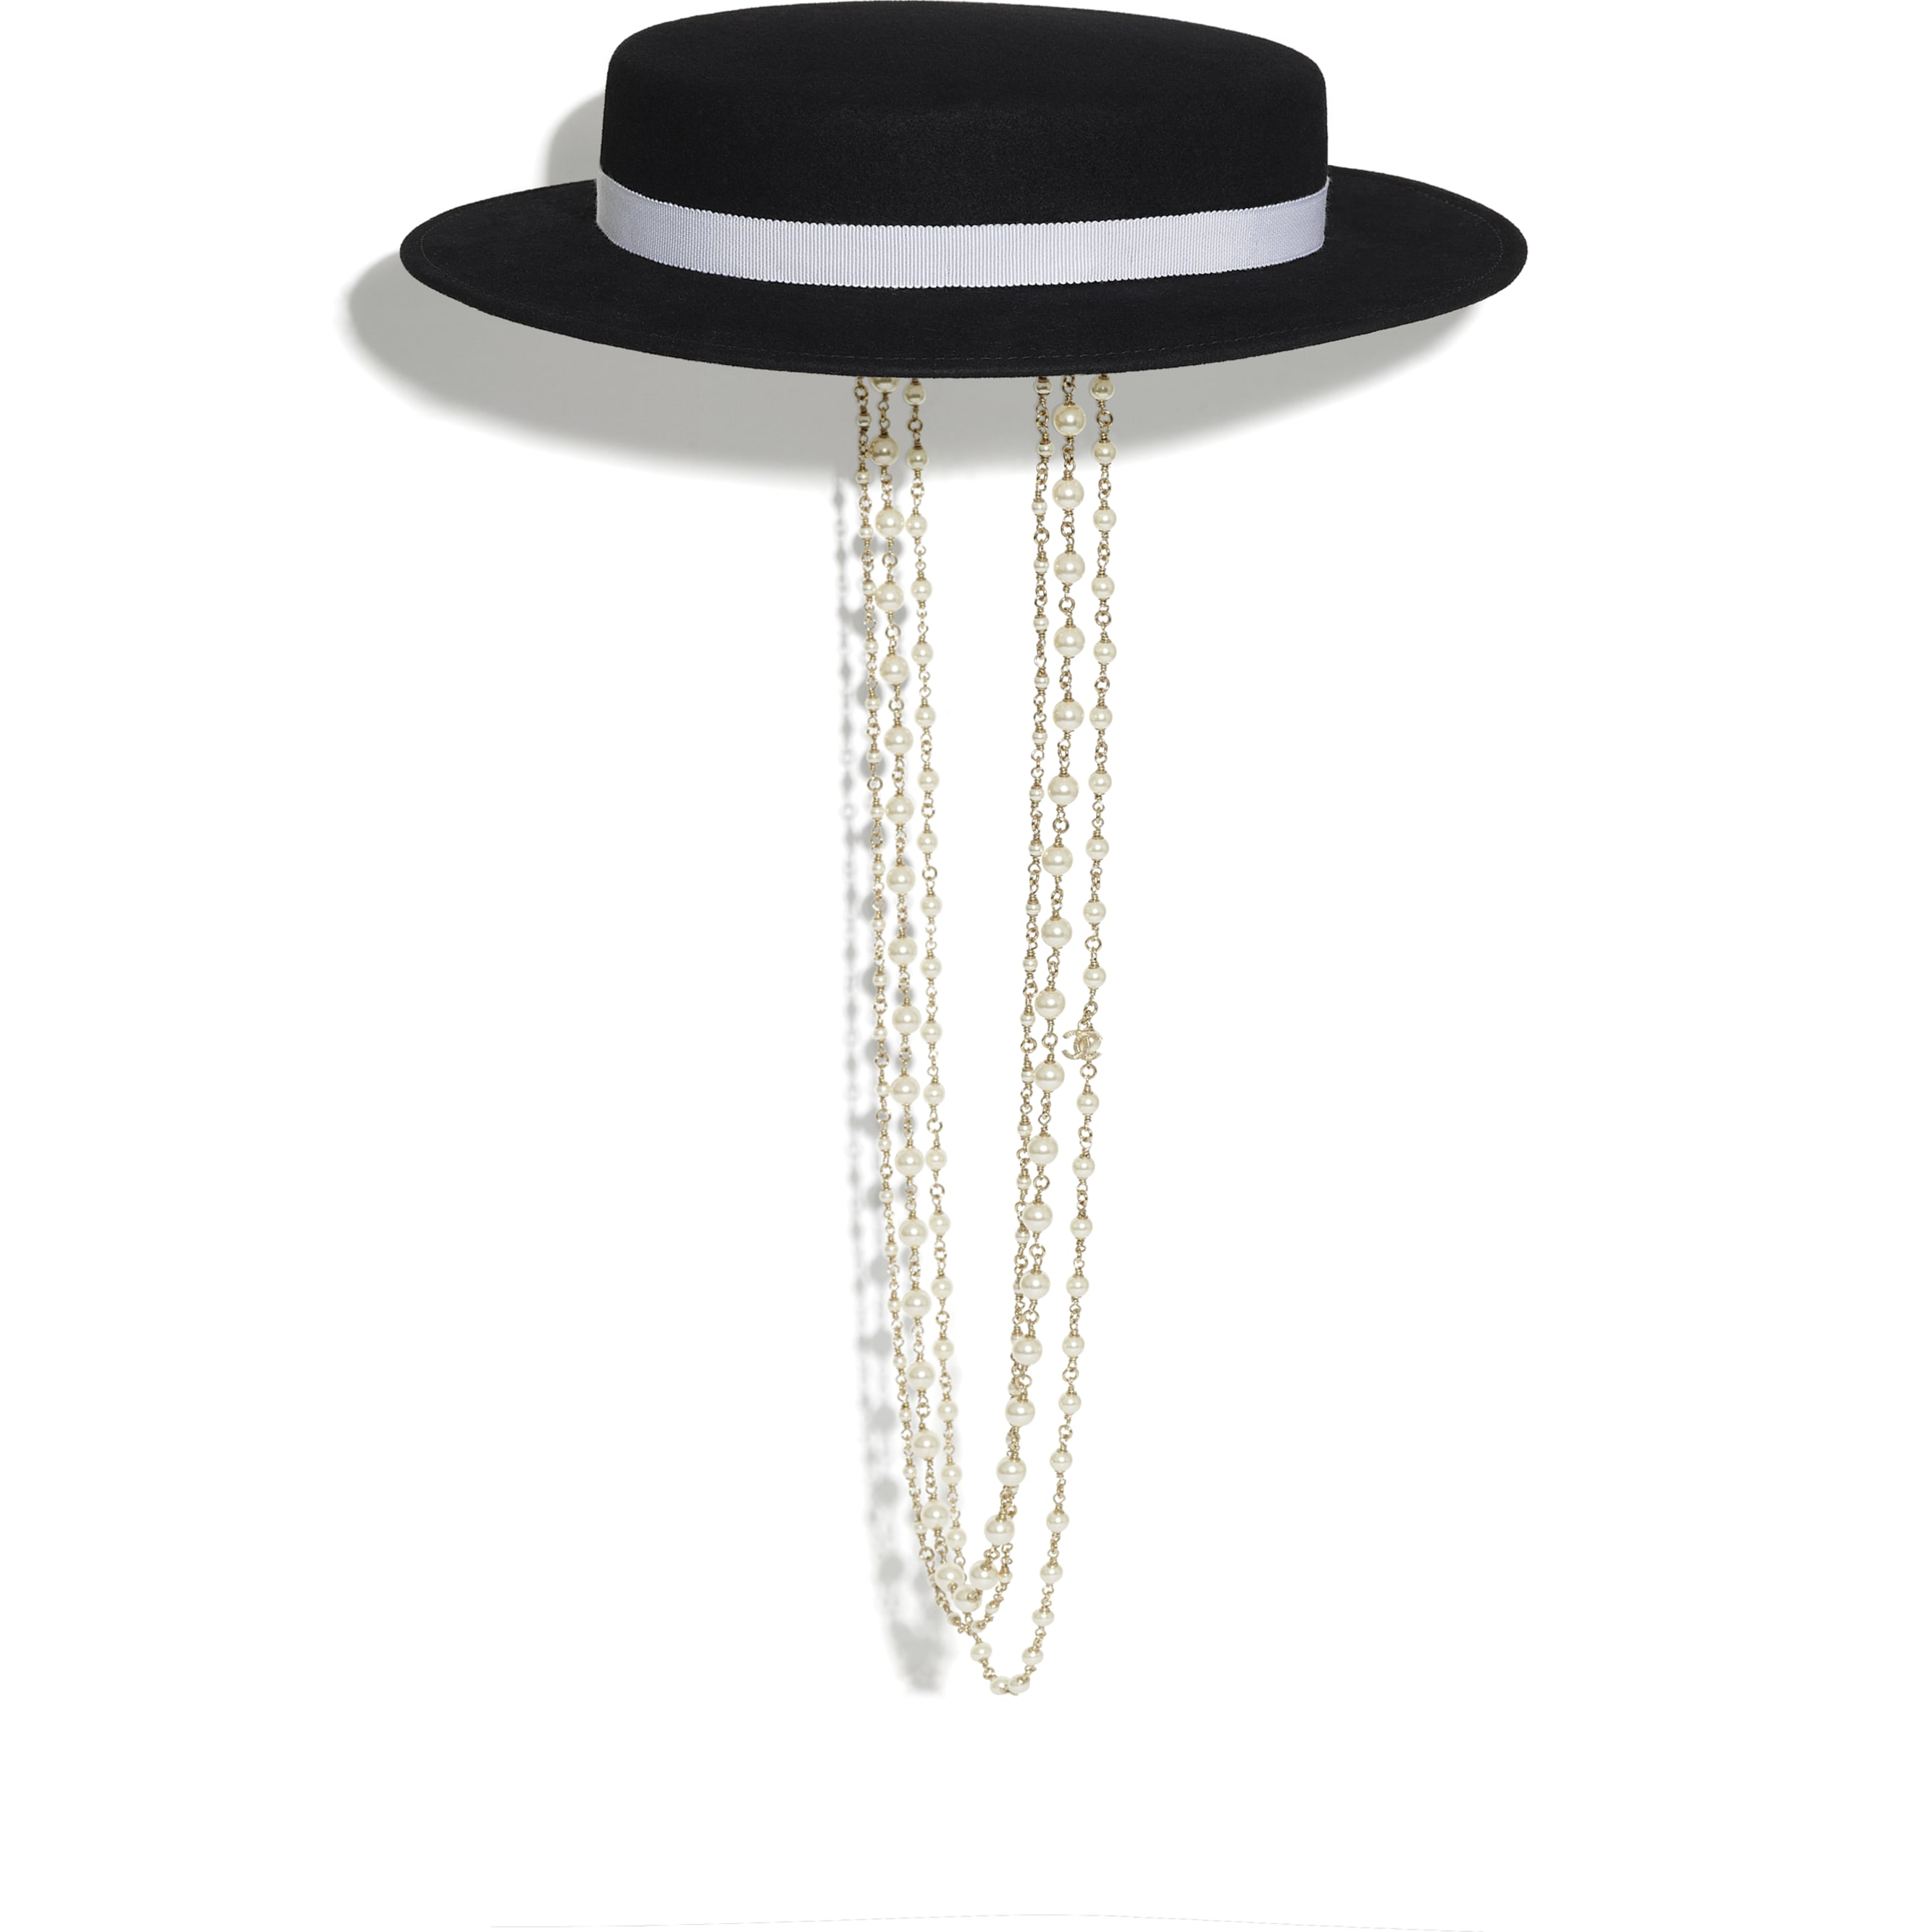 Hat - Black - Felt, Grosgrain, Glass Pearls & Gold-Tone Metal - CHANEL - Default view - see standard sized version